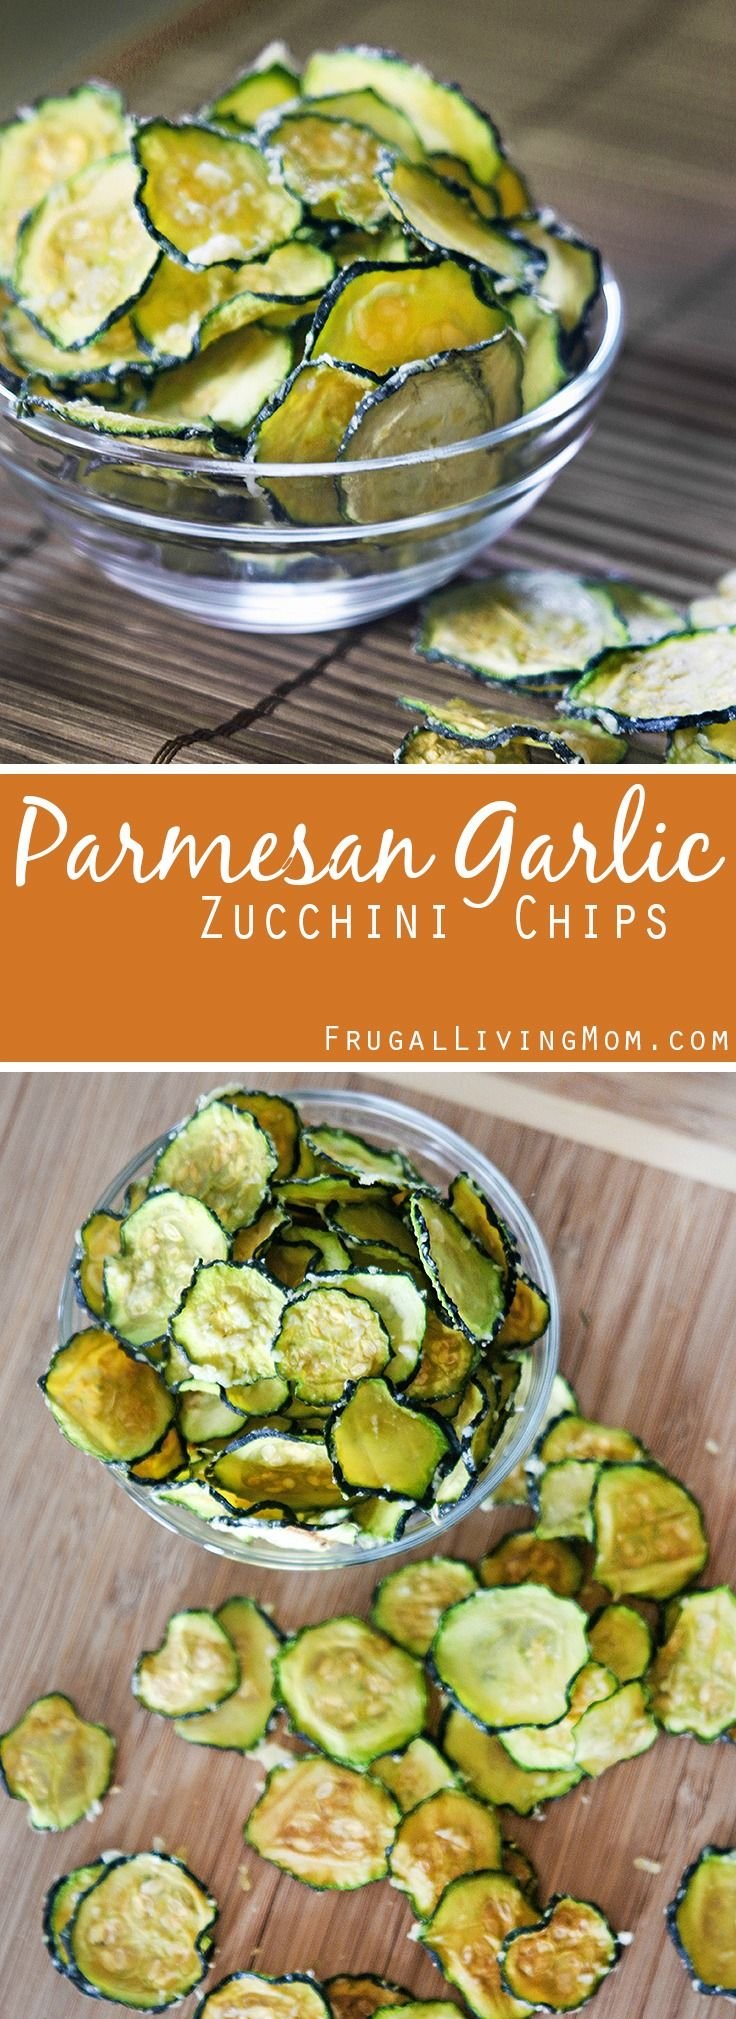 Parmesan Garlic Zucchini Chips!! Hmmmm #Miessence loves the sound of this #recipe!